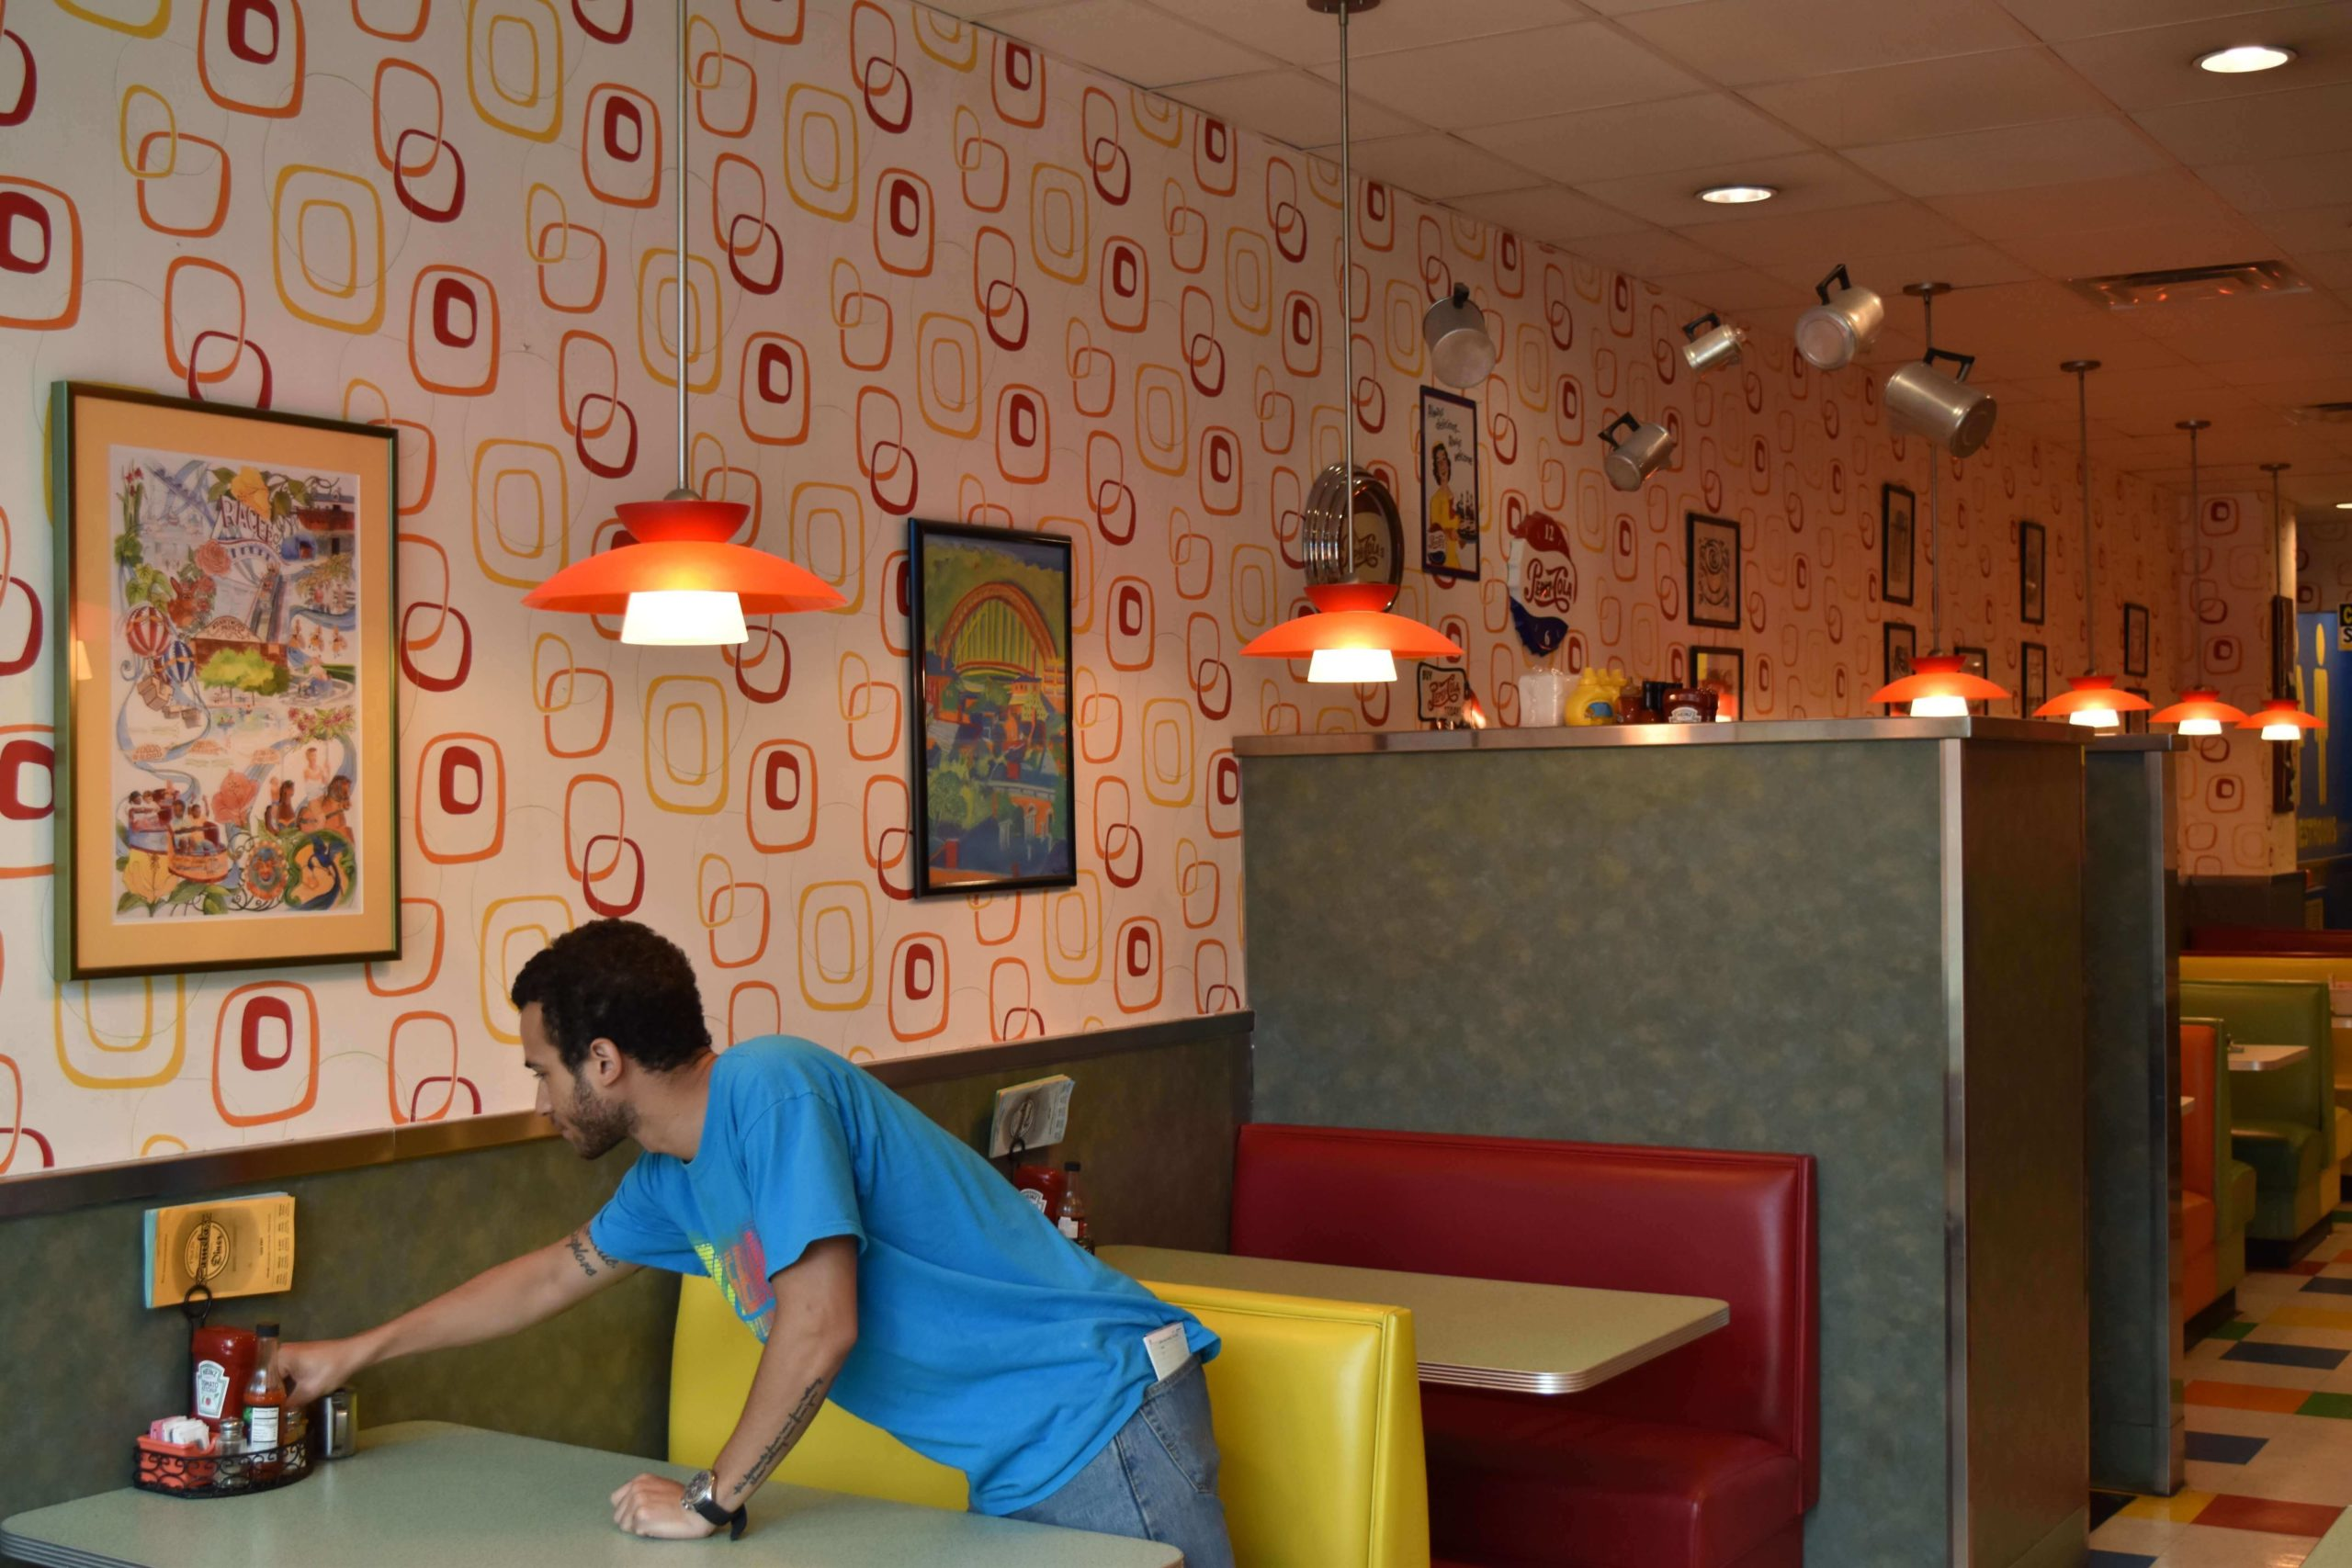 How to have consistent restaurant customer experiences